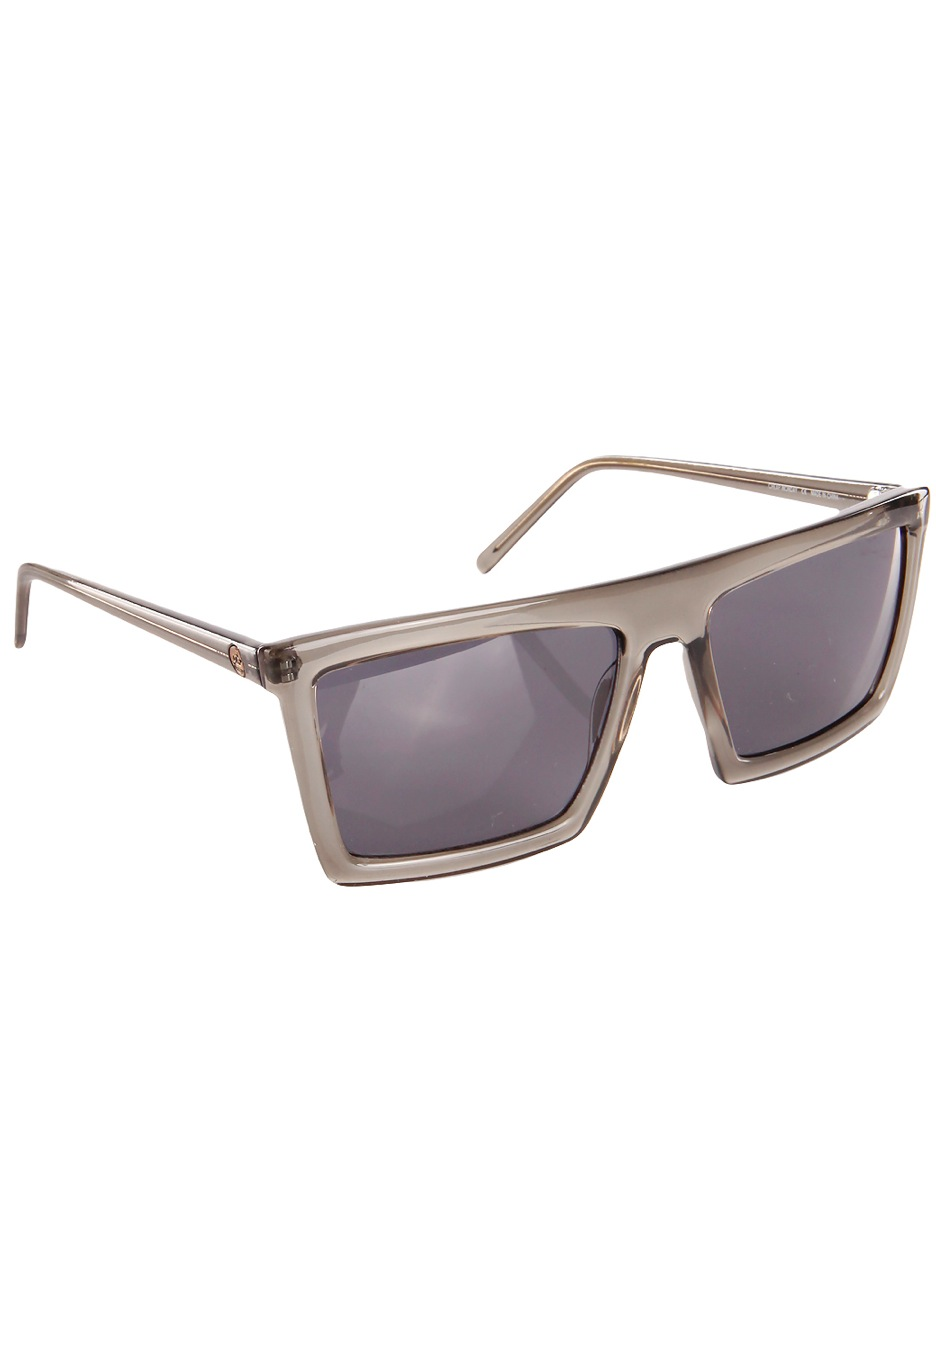 1496115f83e83 Cheap Monday - Automatism Industrial Grey - Sunglasses - Impericon ...